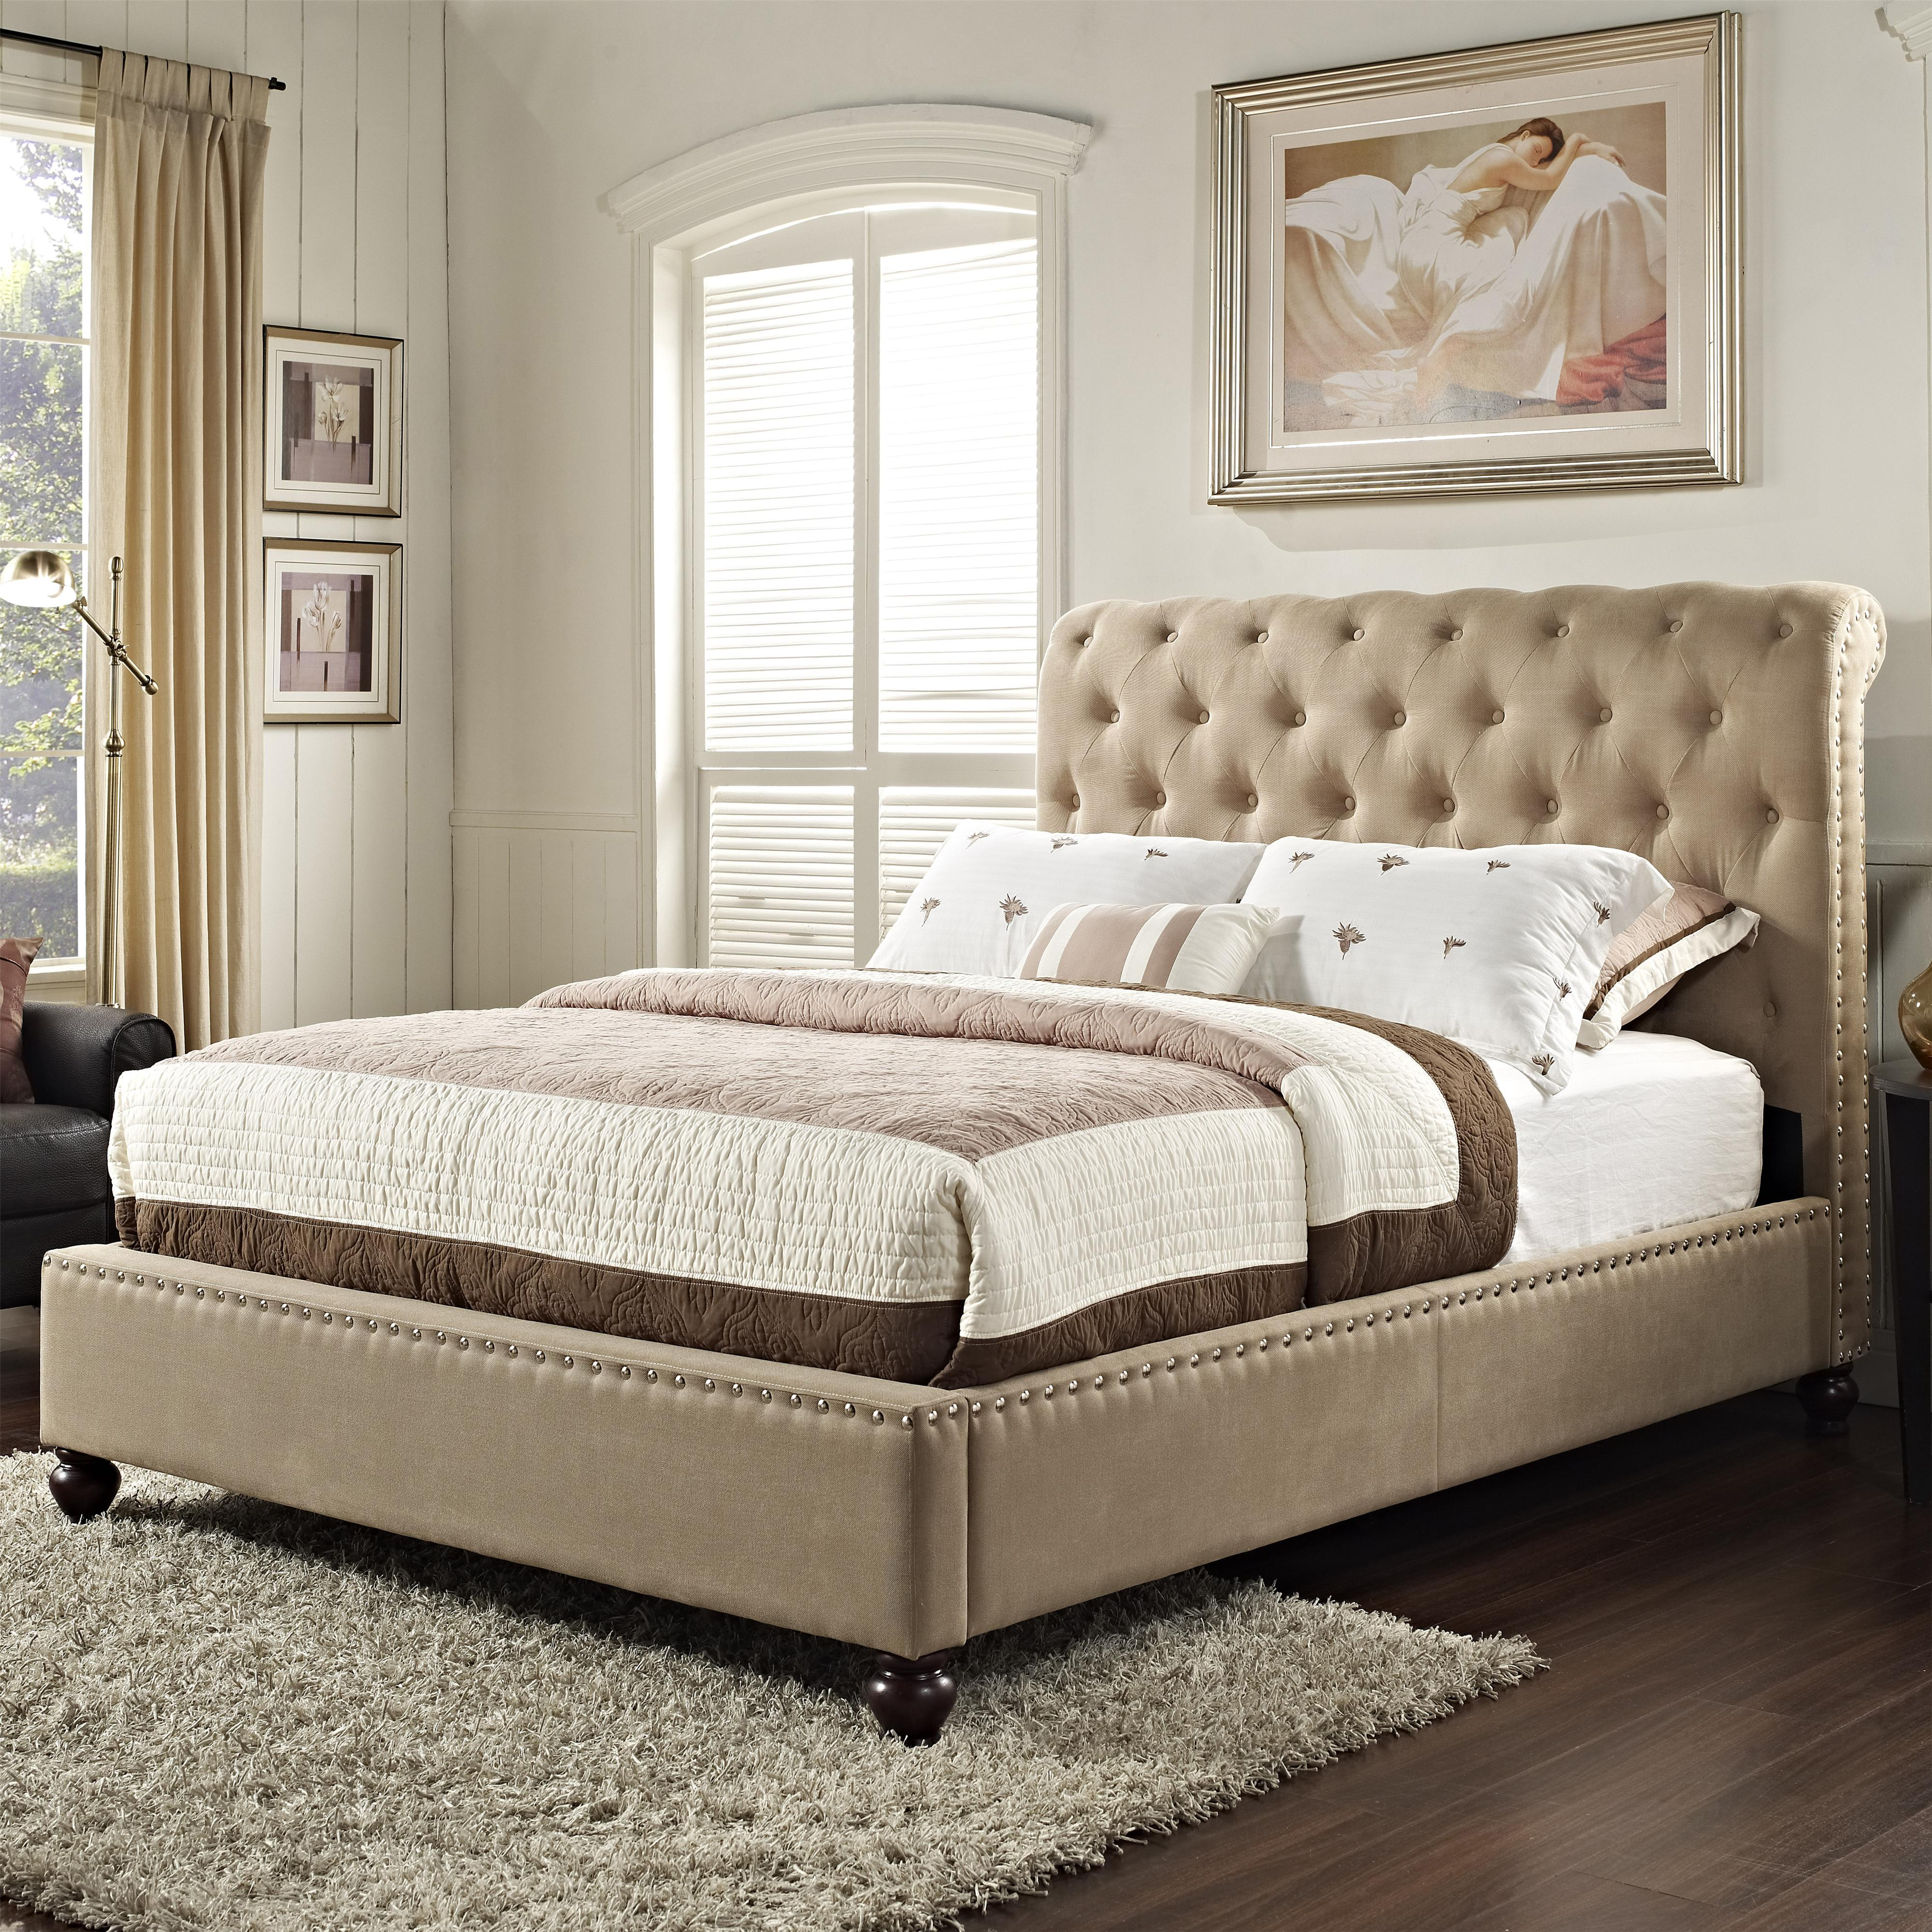 Standard Furniture Stanton Upholstered Queen Bed with Rolled and ...